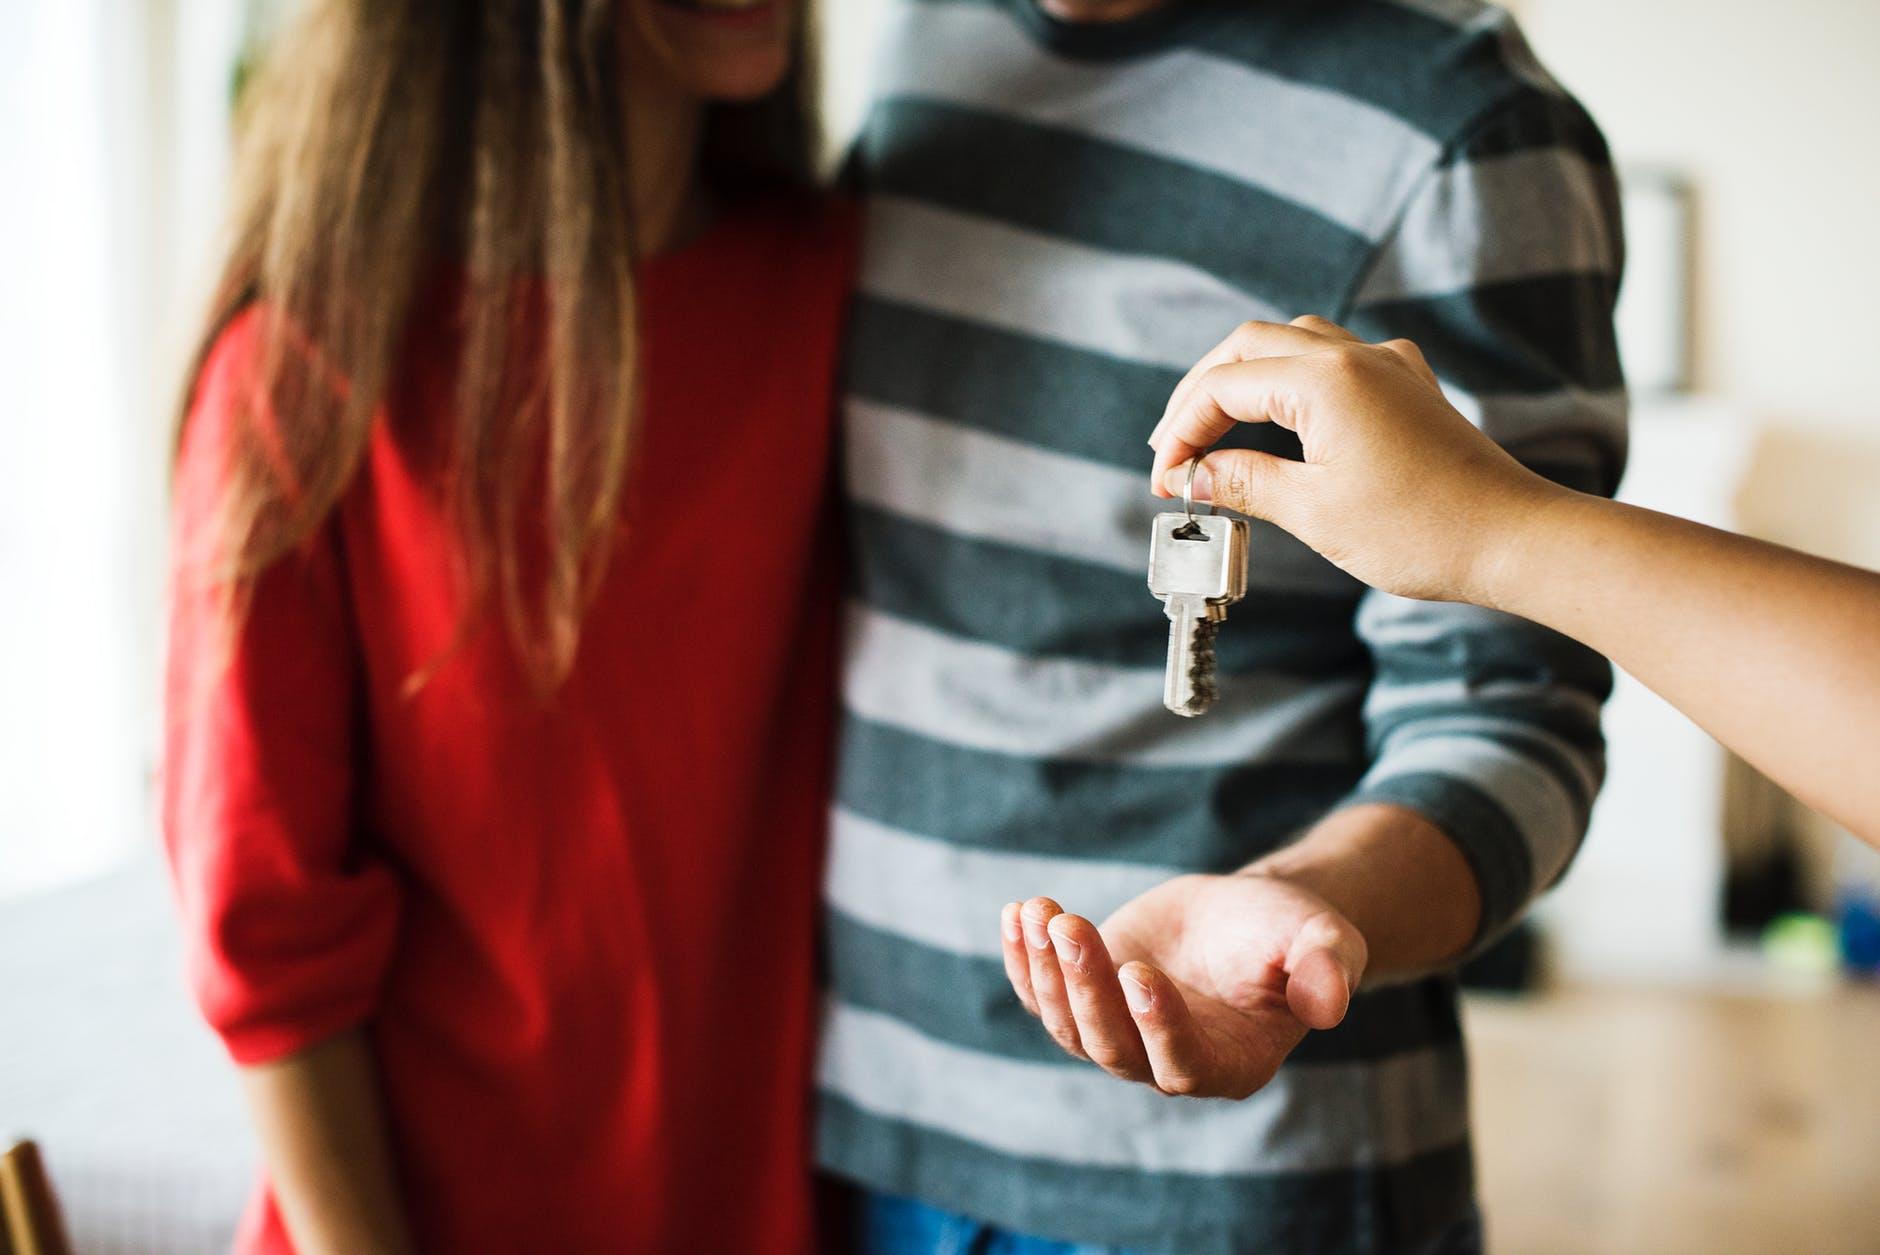 People being handed keys to a home.